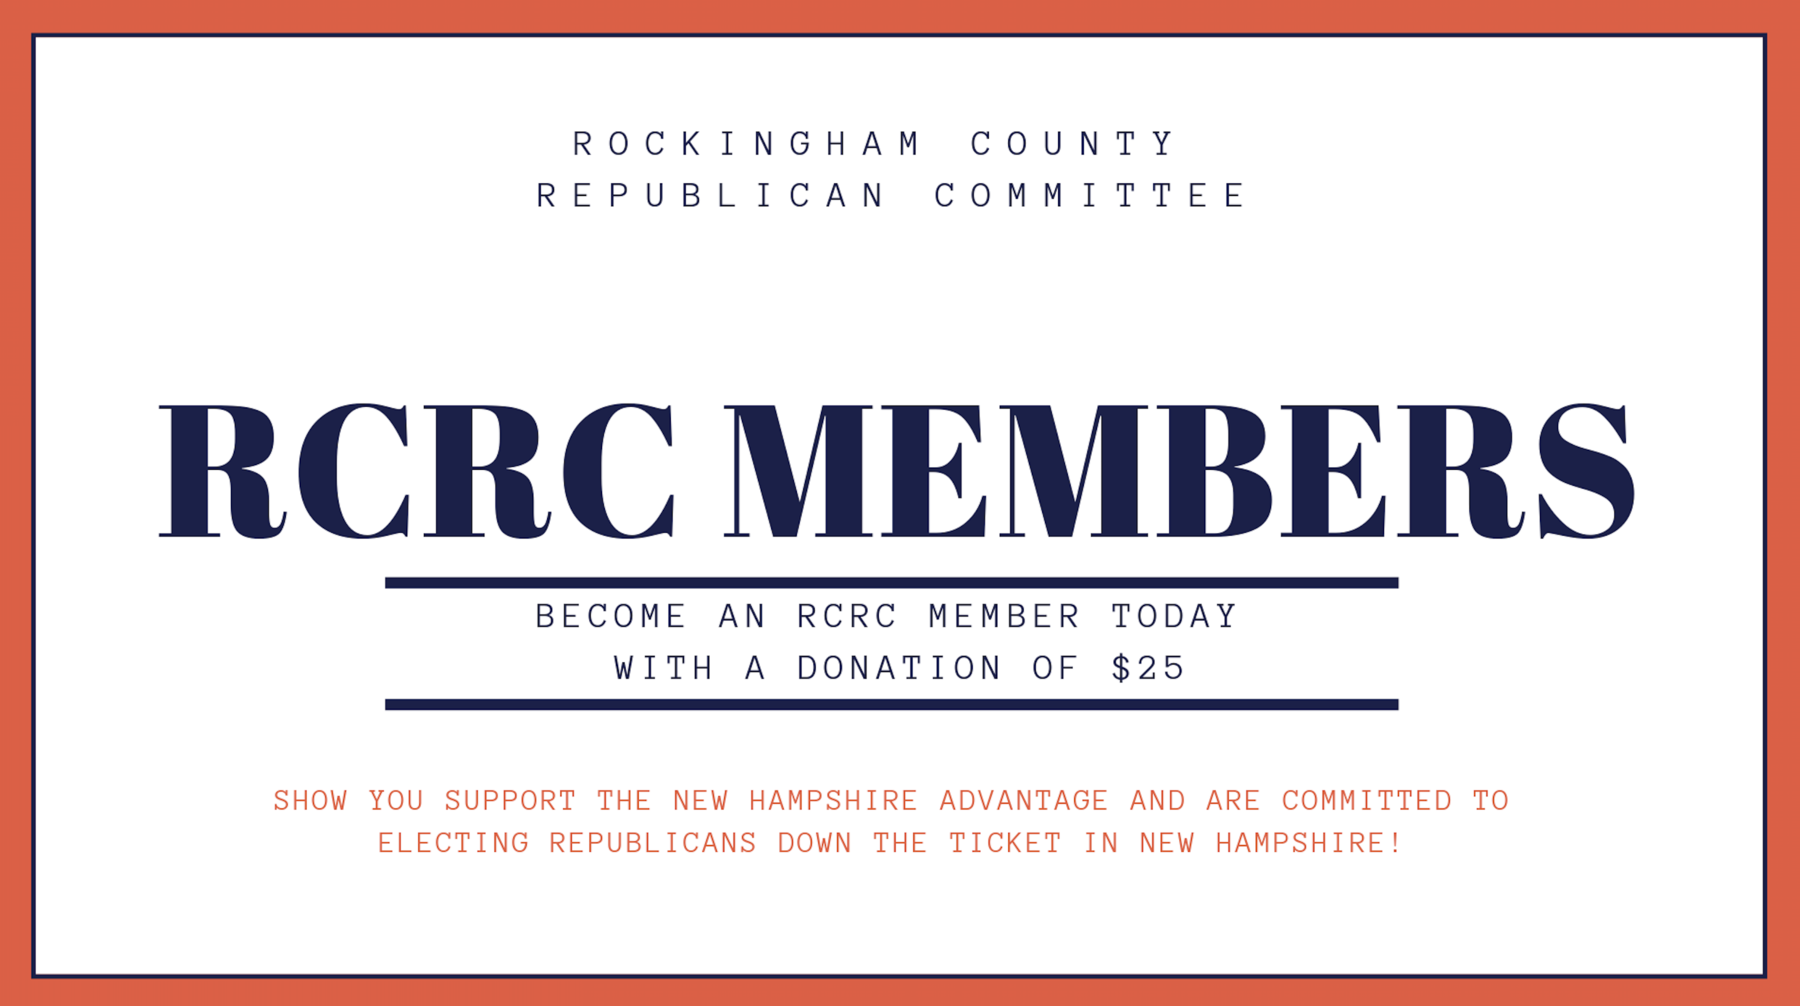 Rockingham County Republican Committee: RCRC MEMBERSHIP